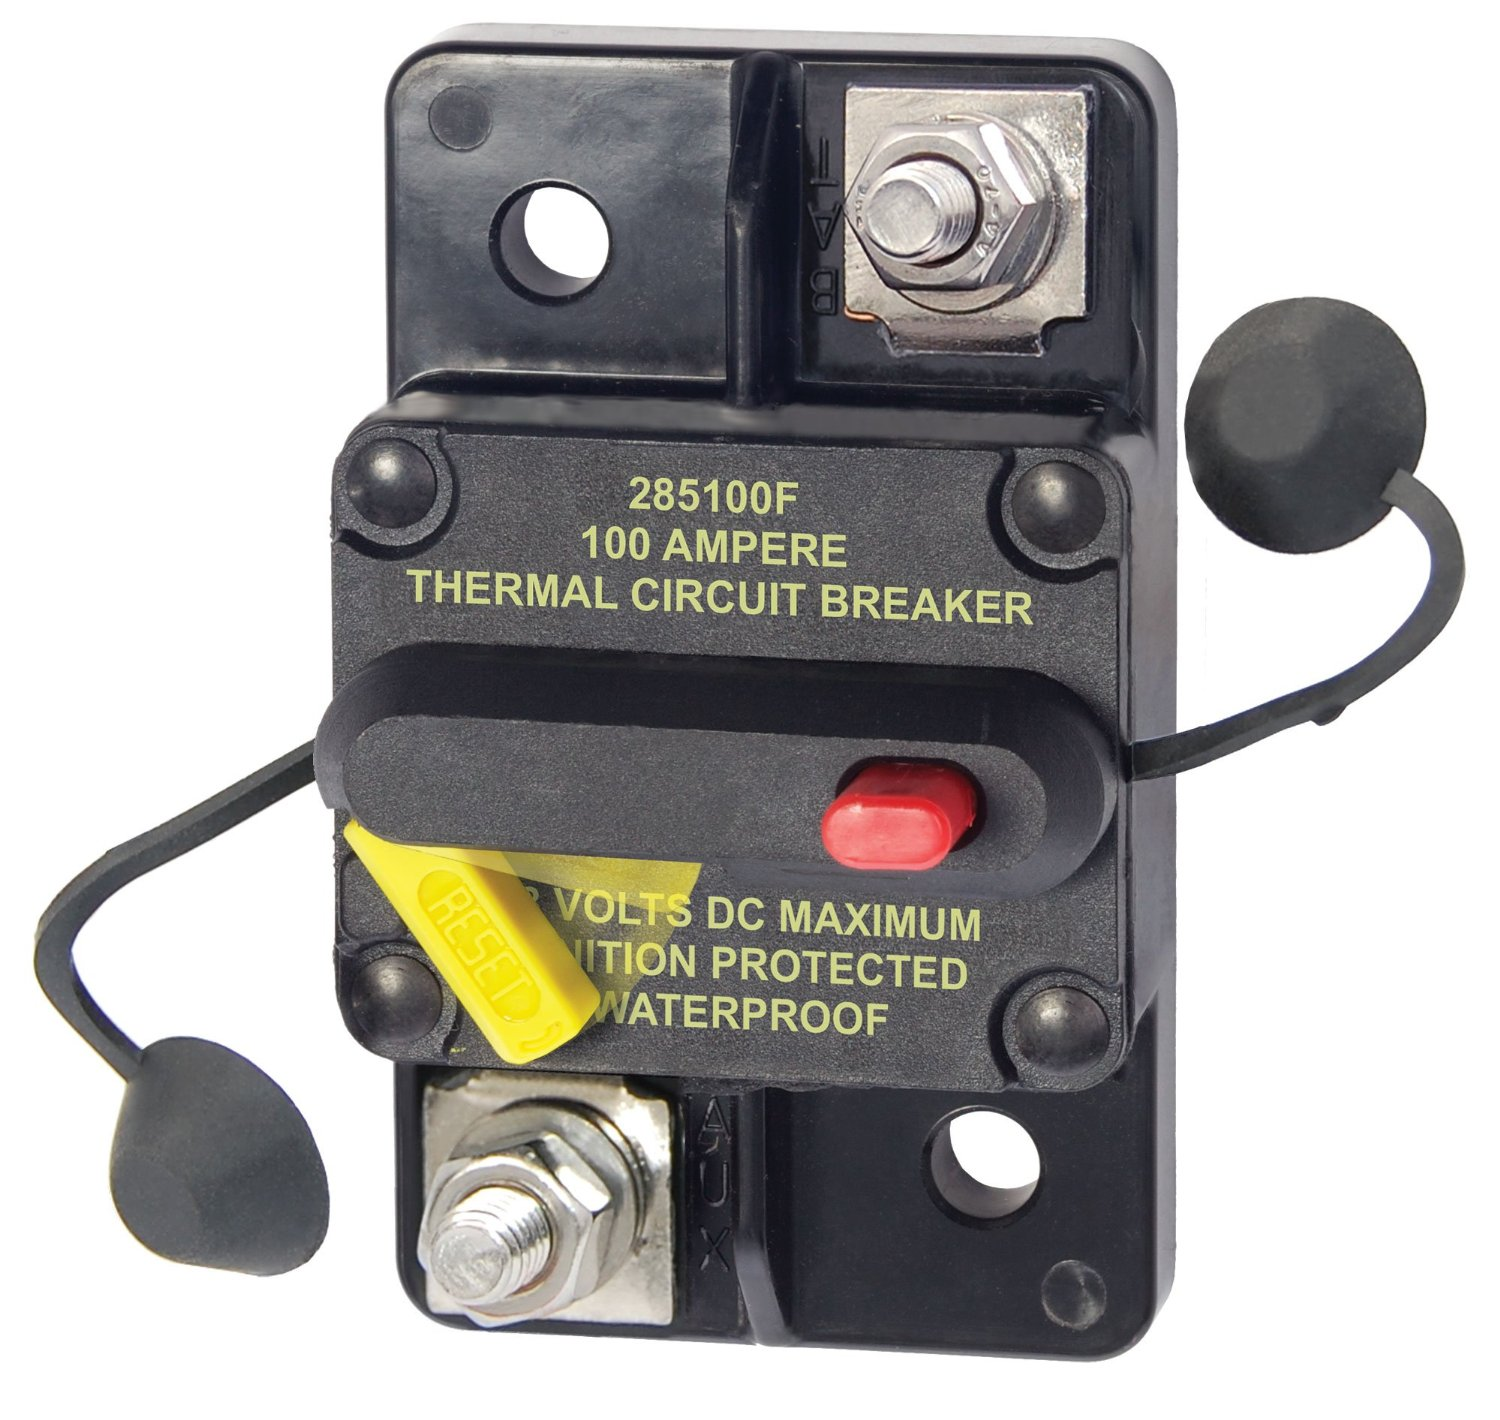 Fuse Block Placement Can Am Commander Forum Upgrade 100 Amp Box To Circuit Breakers Click Image For Larger Version Name 81 Lr4nge1l Sl1500 Views